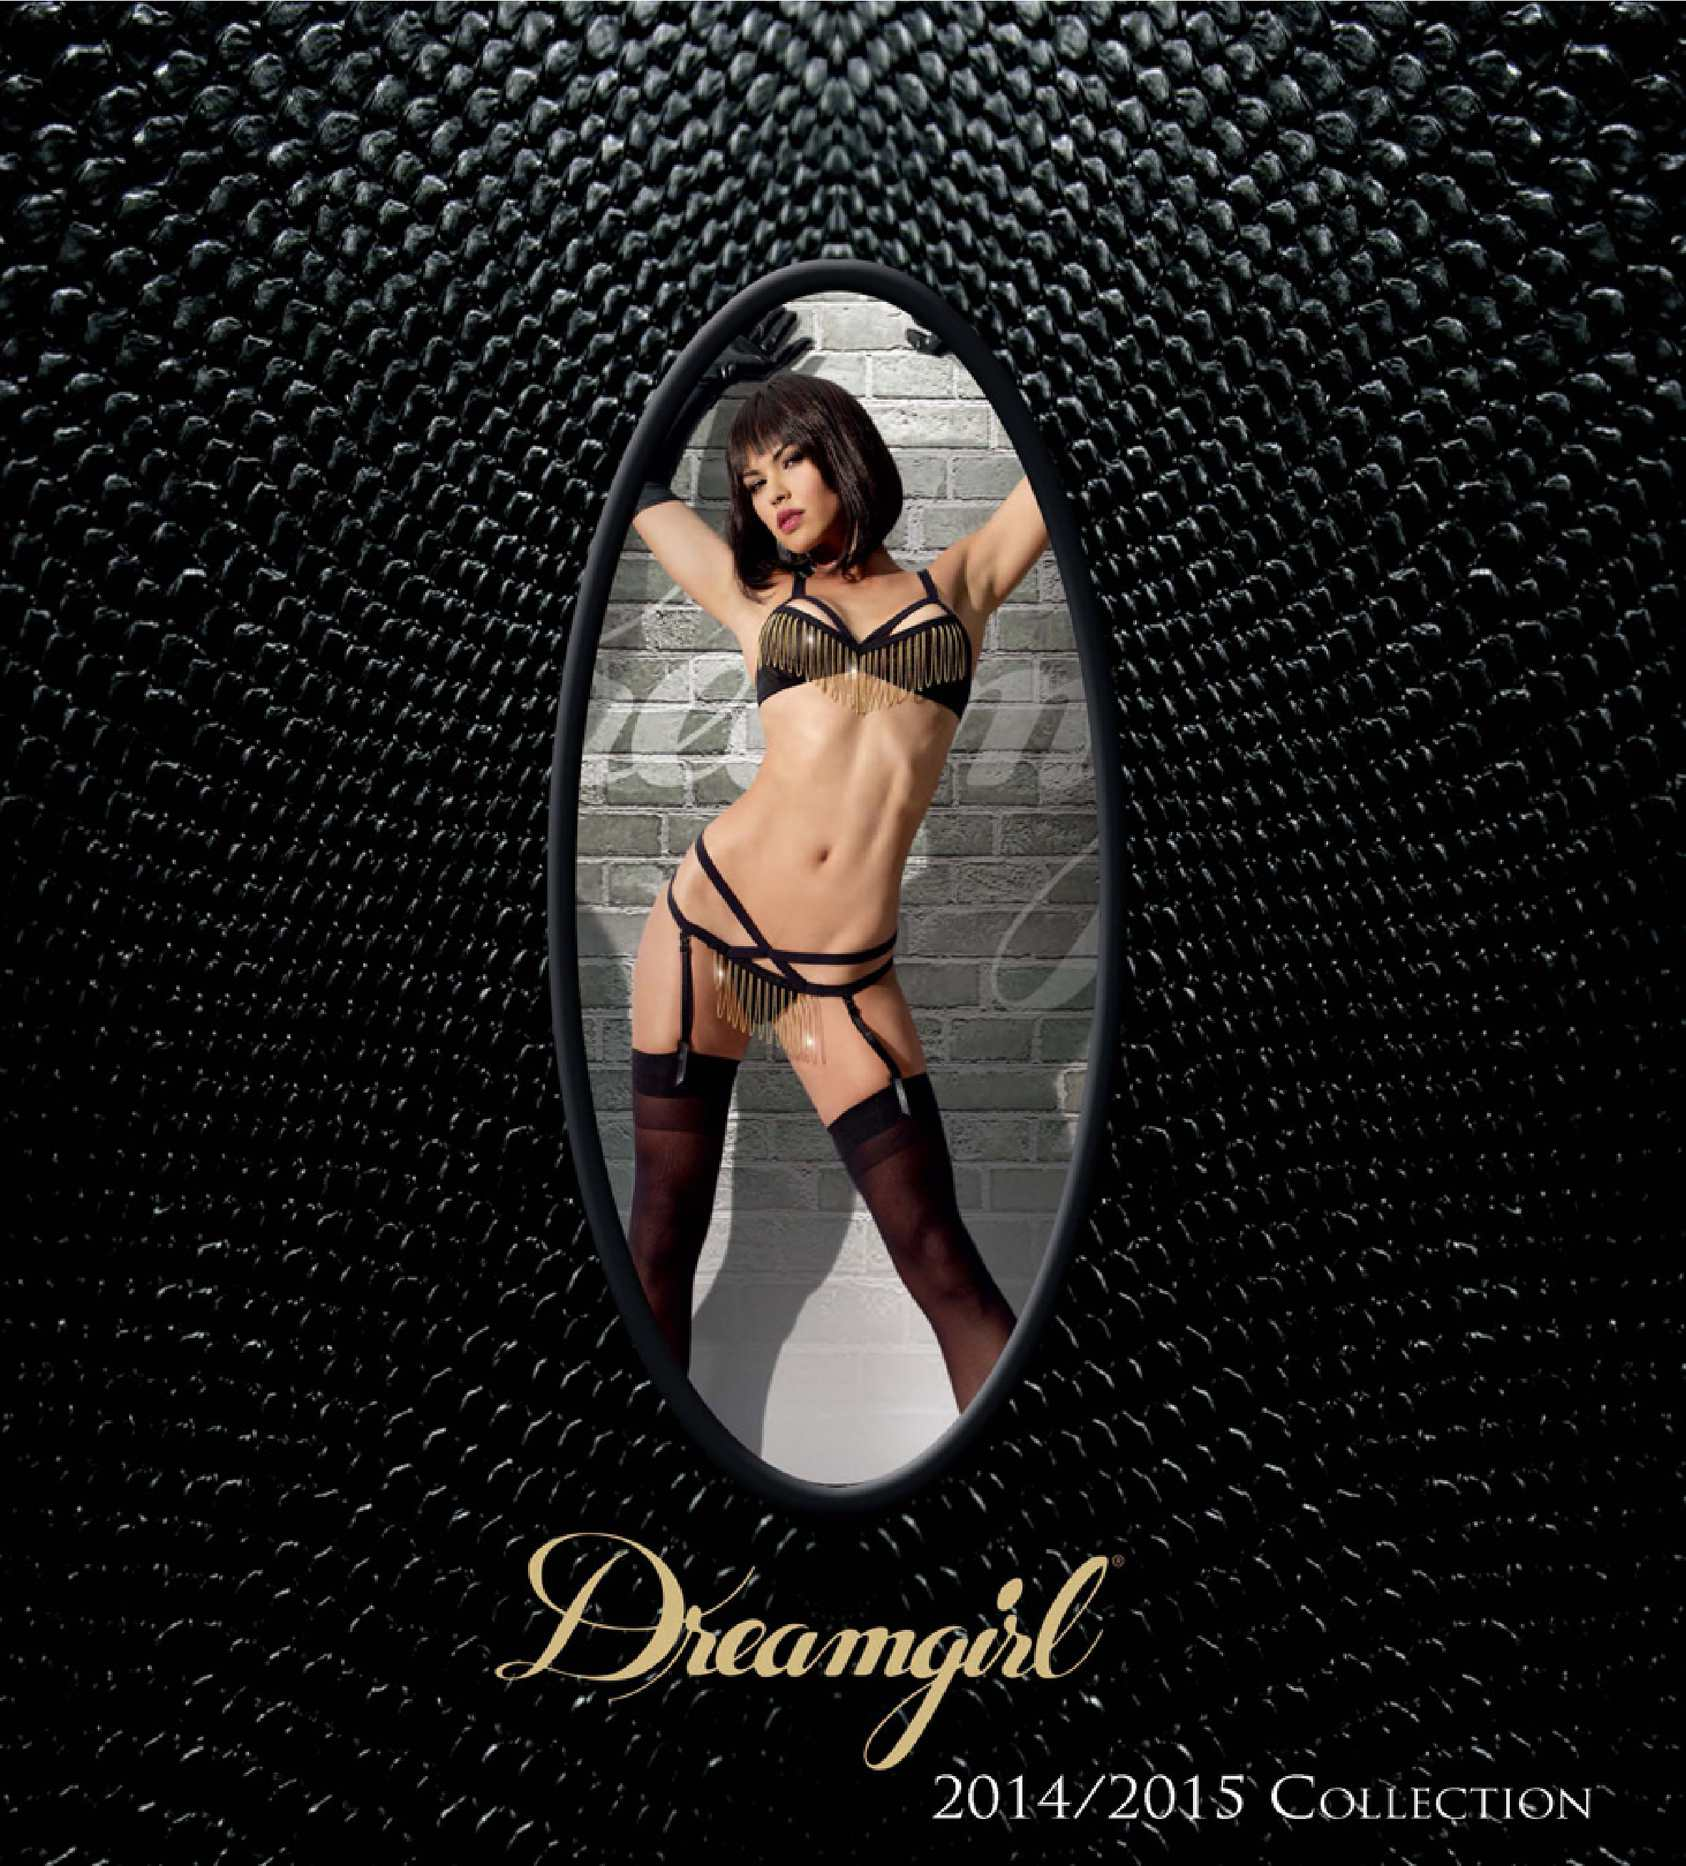 Dreamgirl Collection 2014/2015 Made in USA